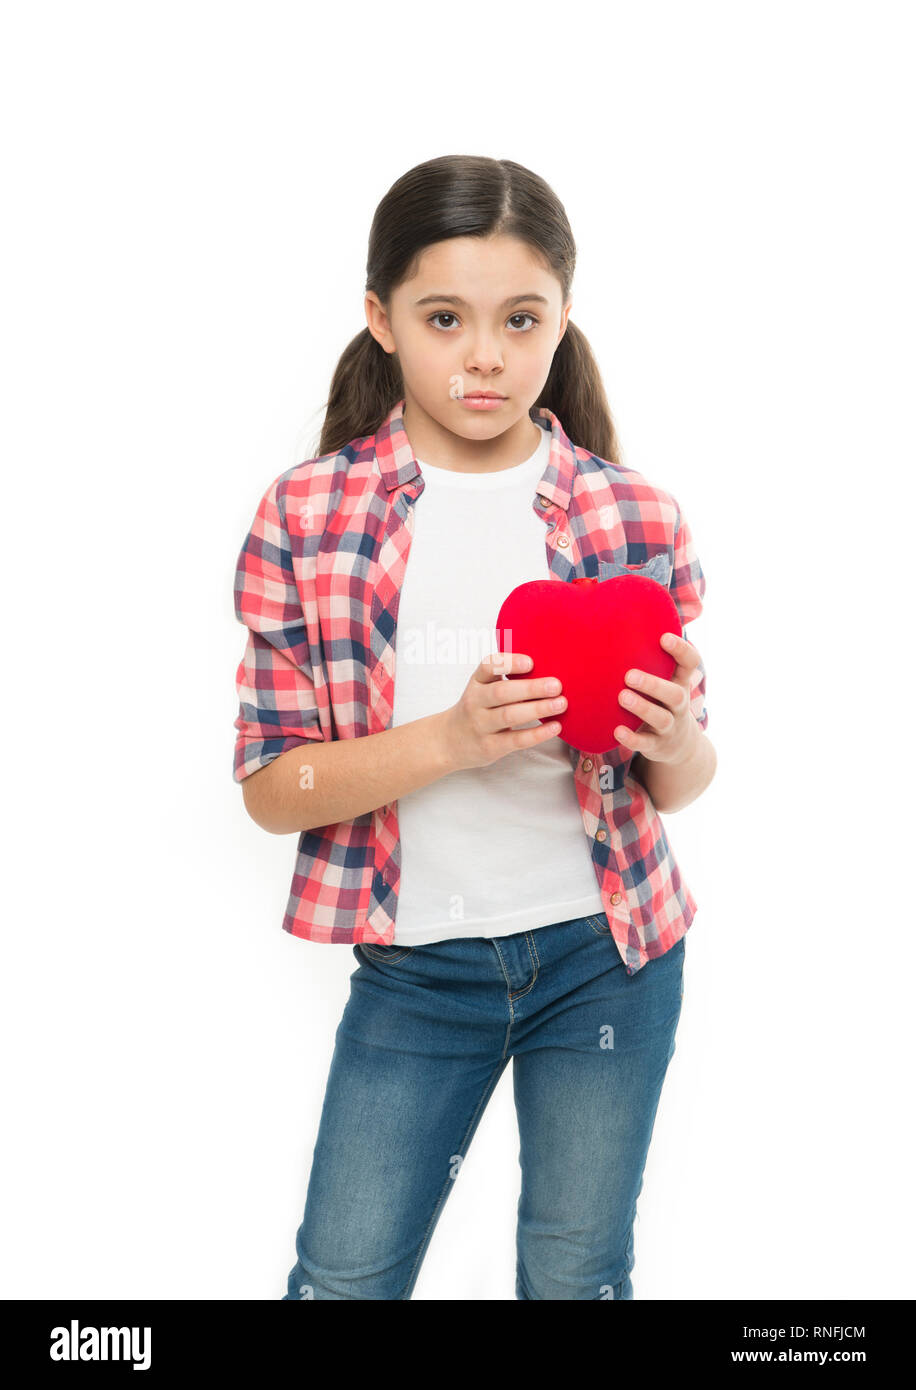 Love and romantic feelings concept. Red heart attribute of valentine. Heart gift or present. Me to you. Greeting from sincere heart. Girl cute child hold heart symbol love. Celebrate valentines day. - Stock Image